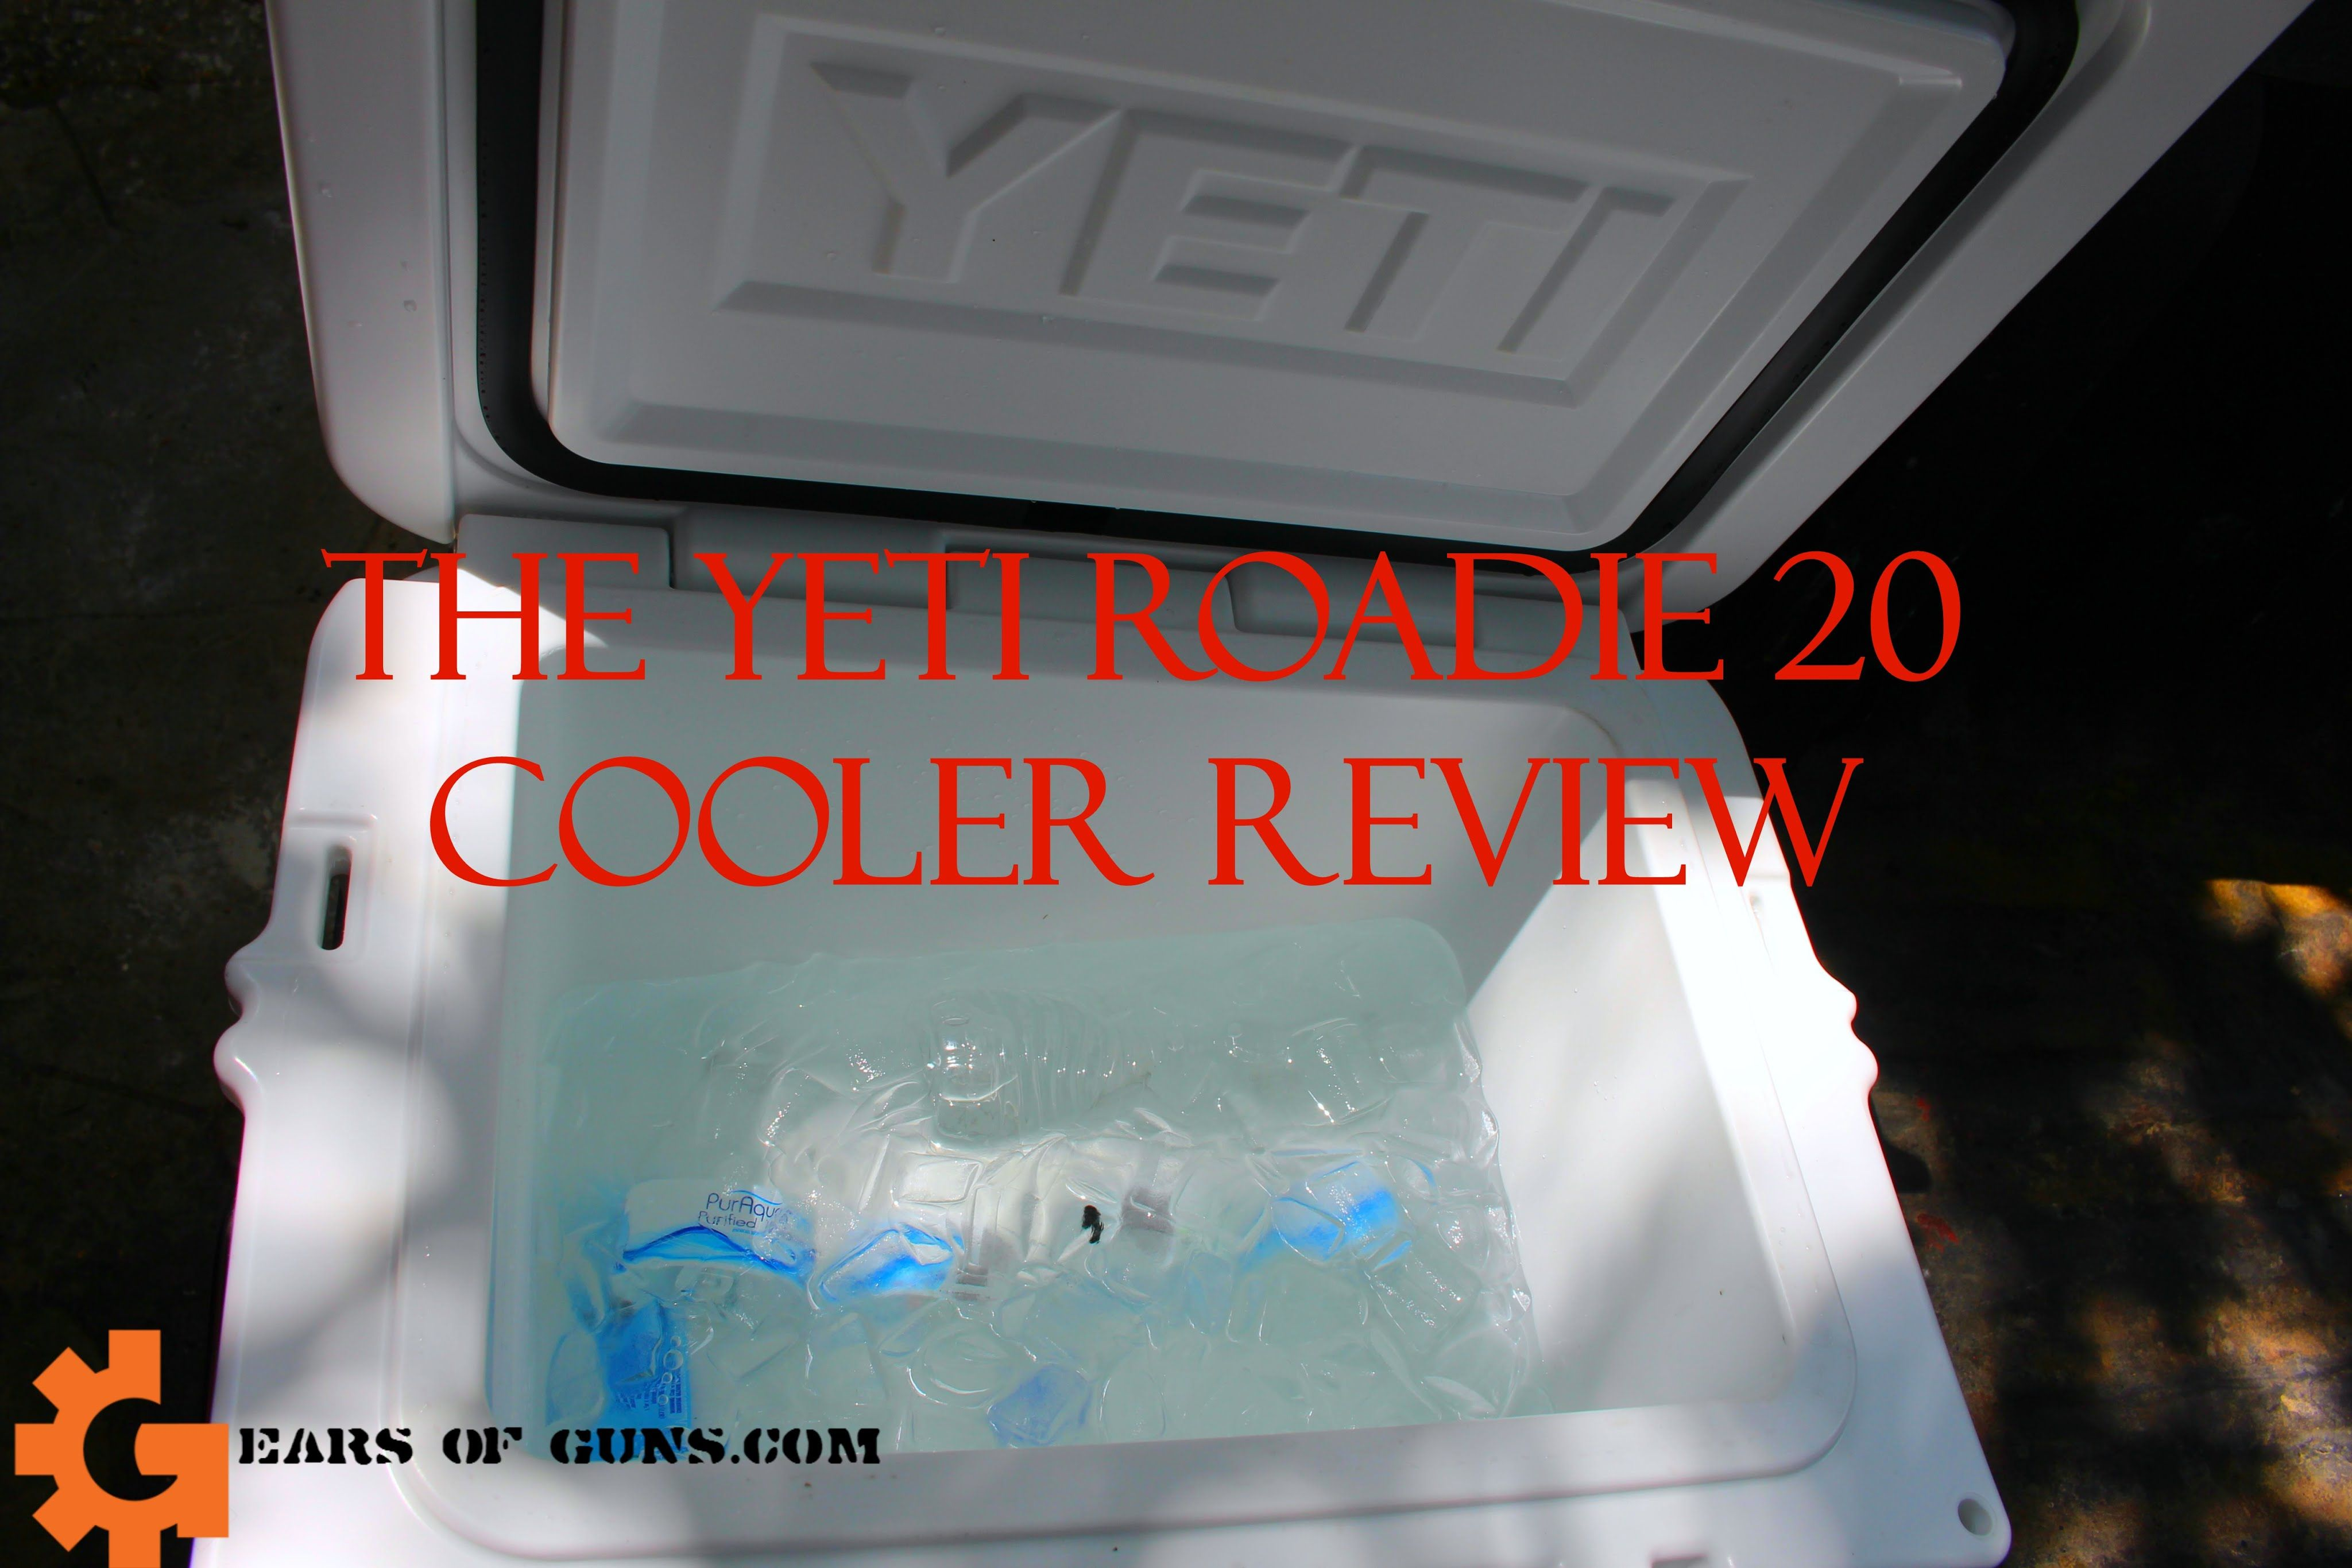 The Coolest Yeti Roadie 20 Review Gears Of Guns Cooler Reviews Yeti Roadie Roadies